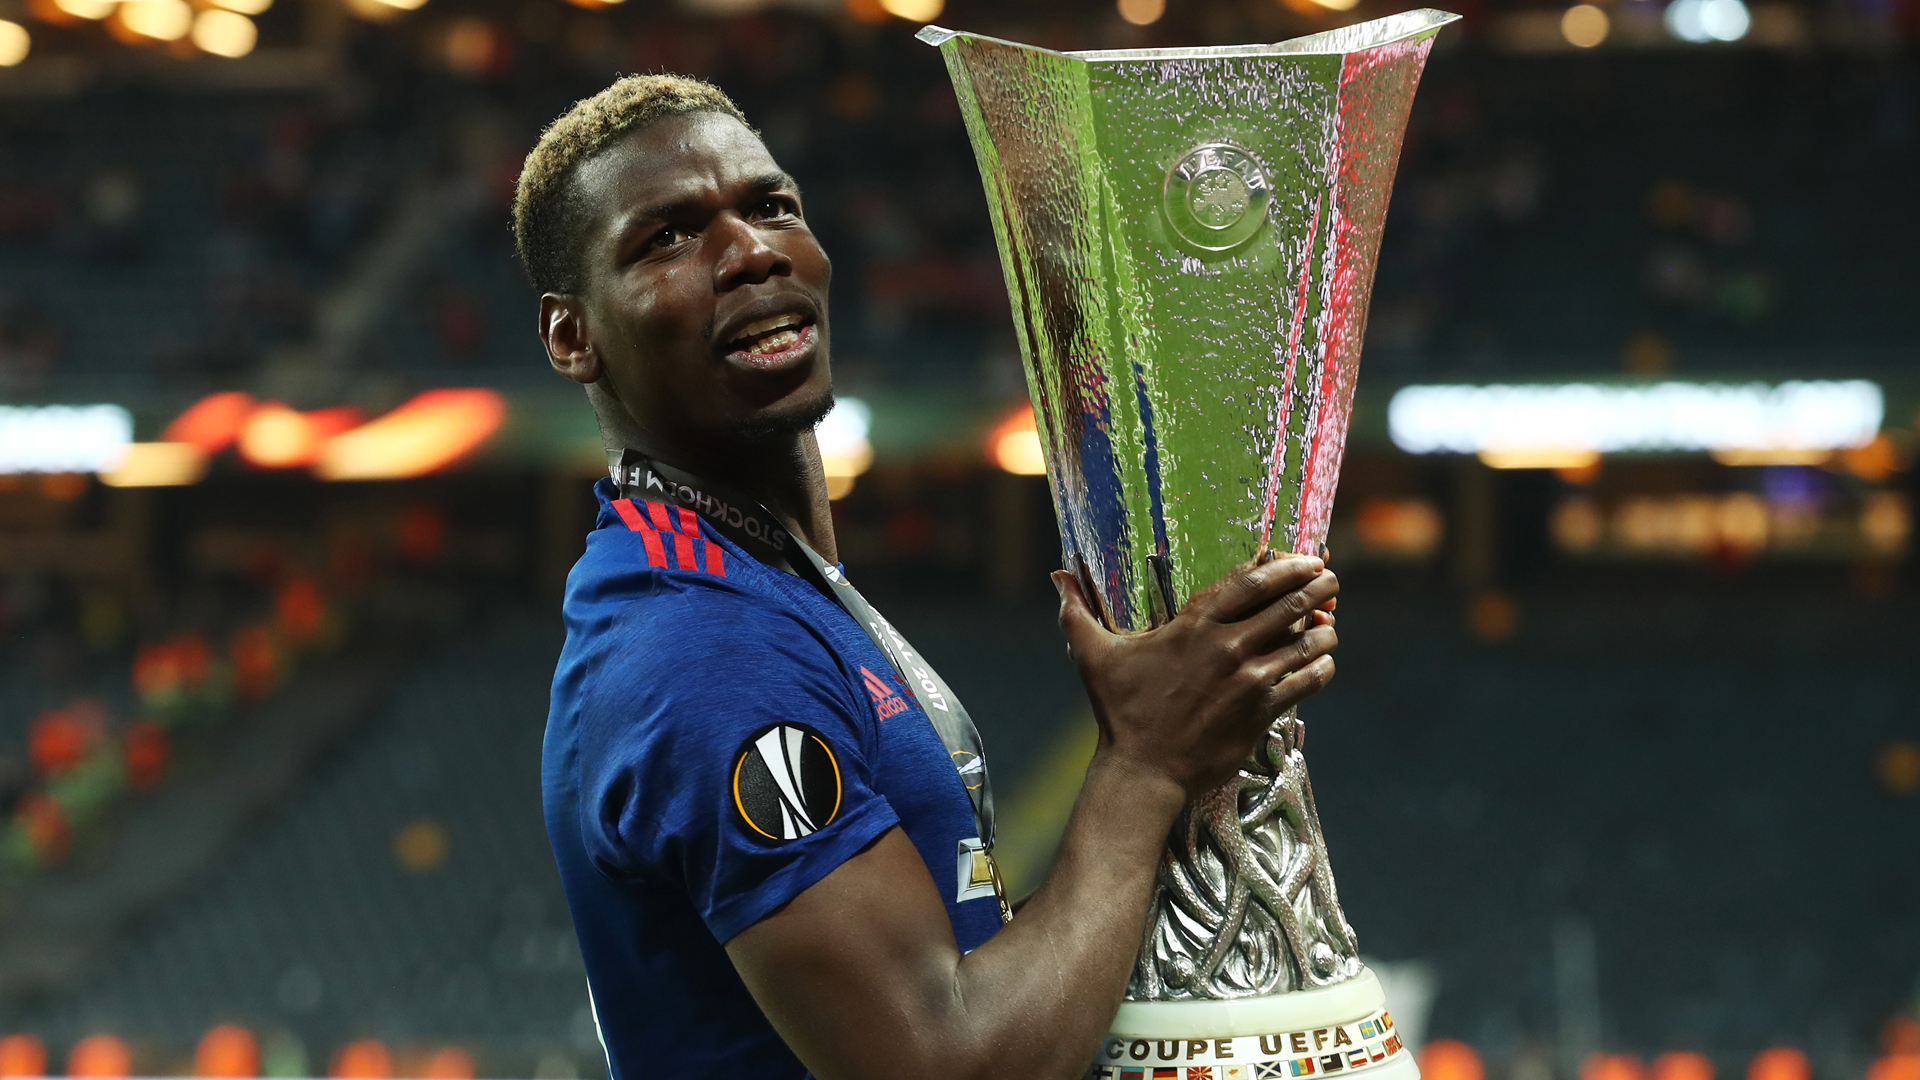 Europa League: Winning trophy has given Manchester